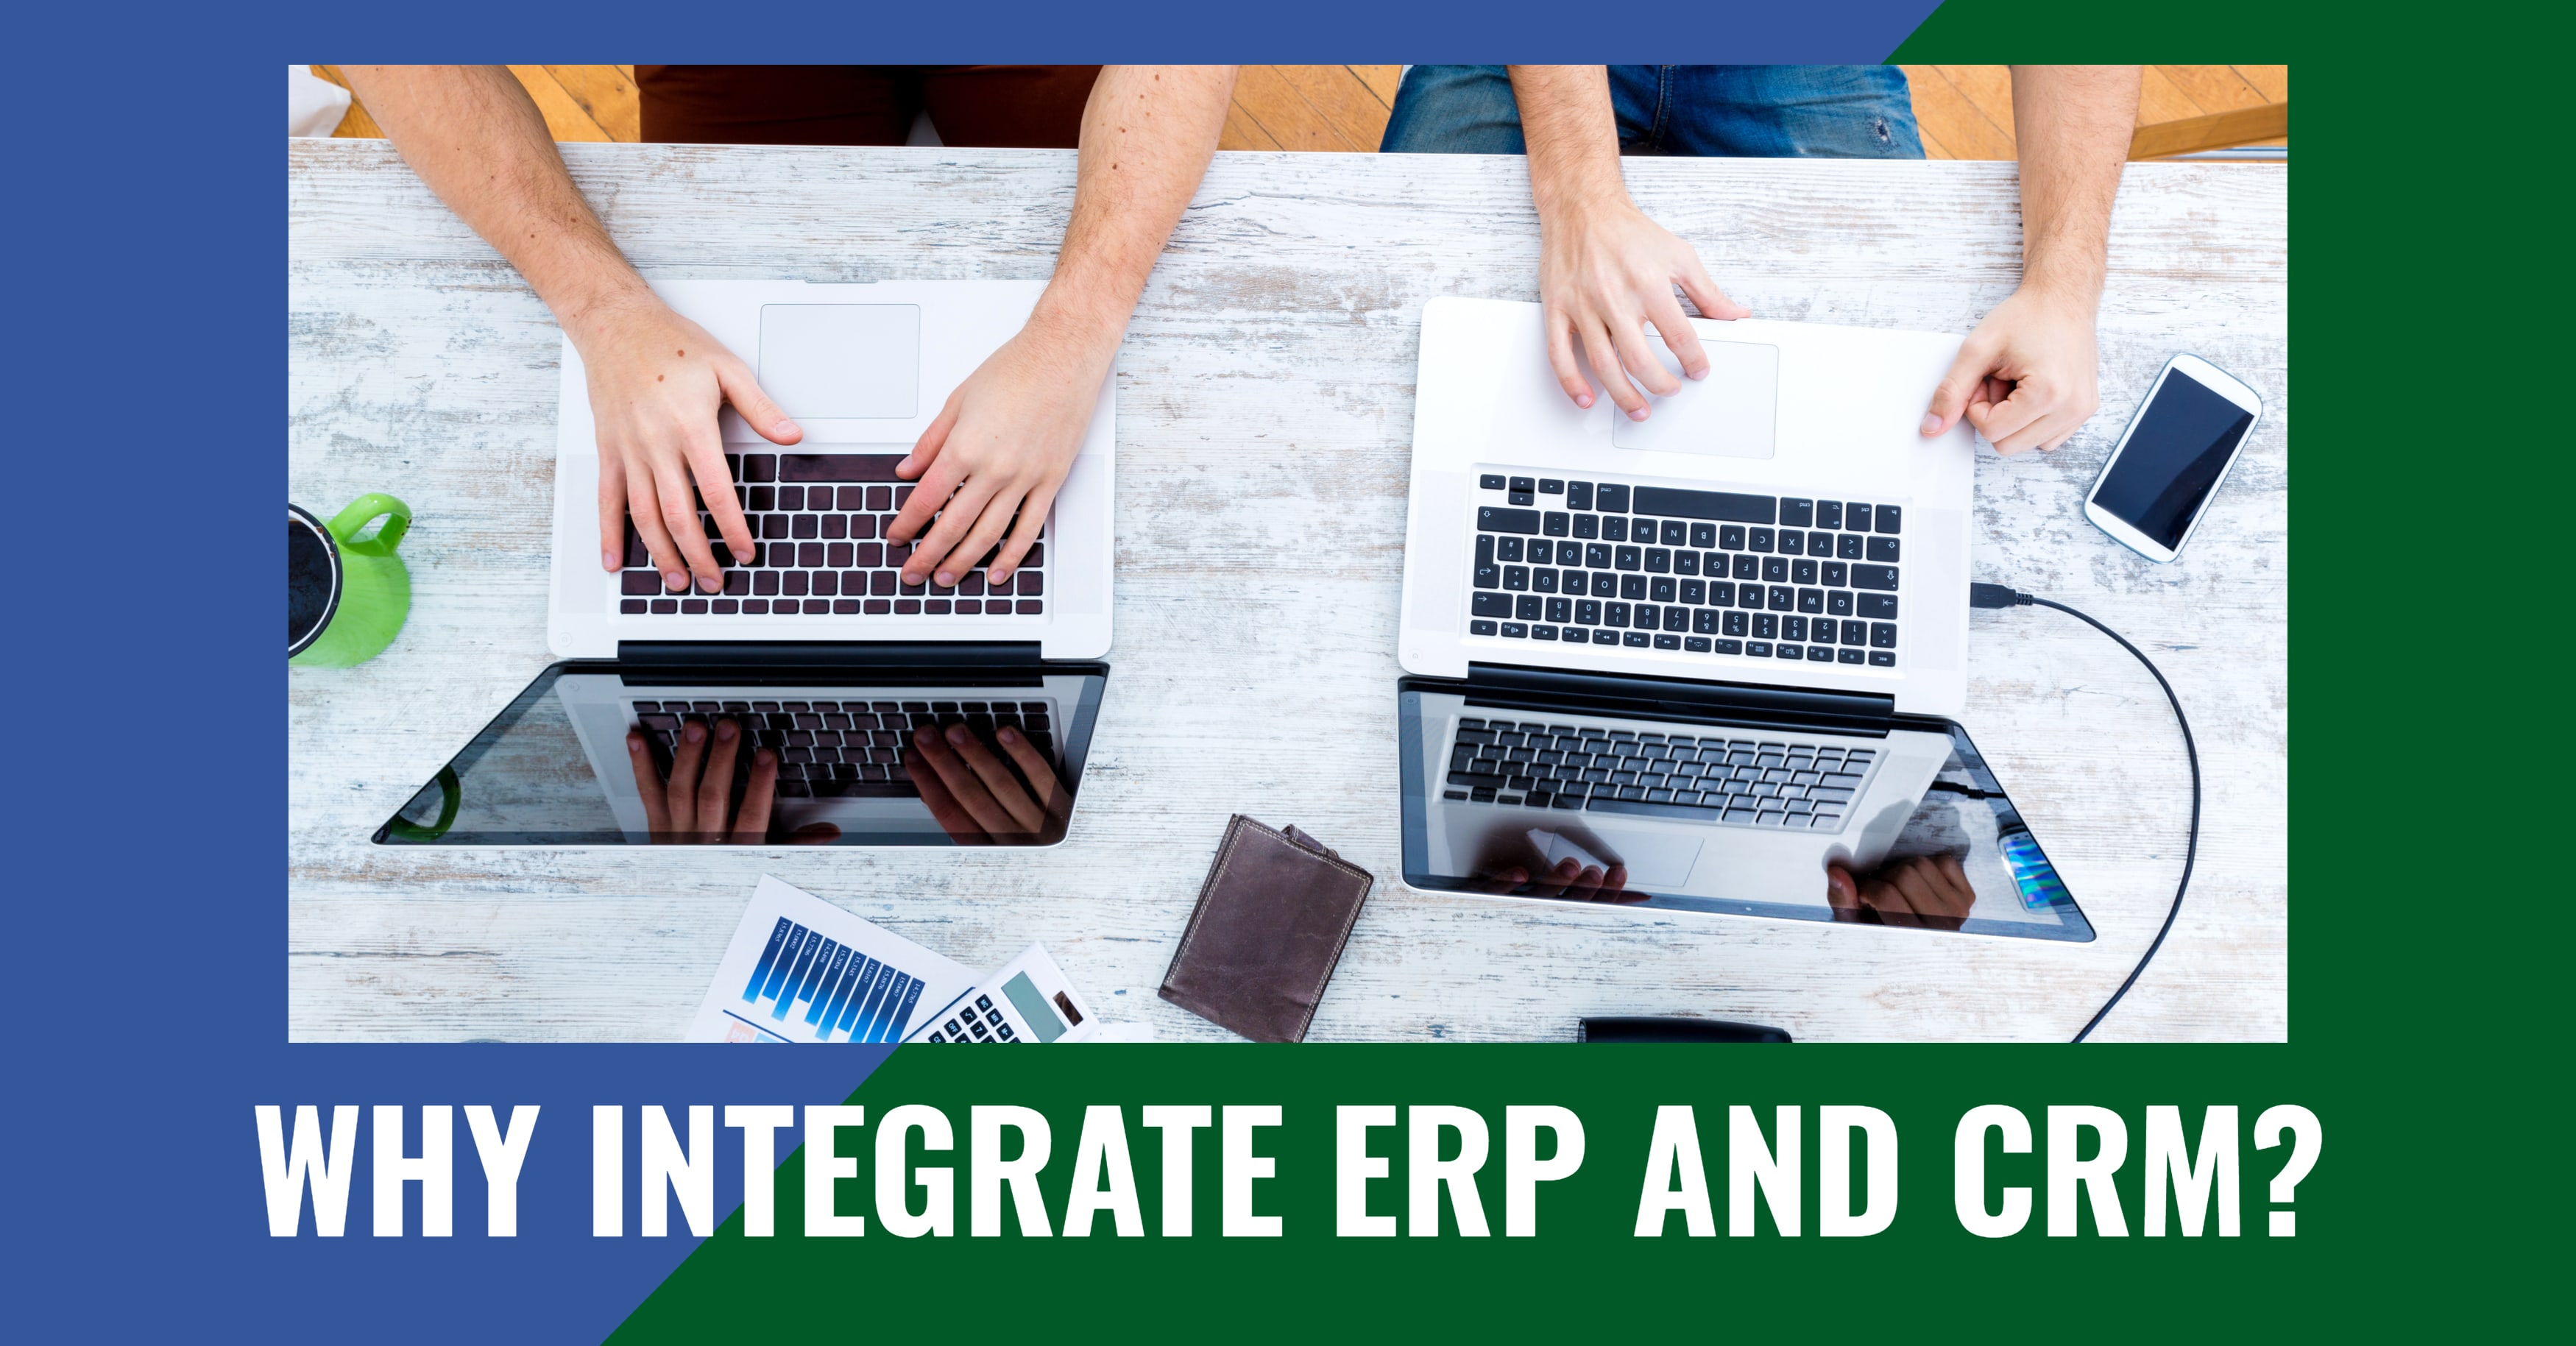 Integrate ERP and CRM